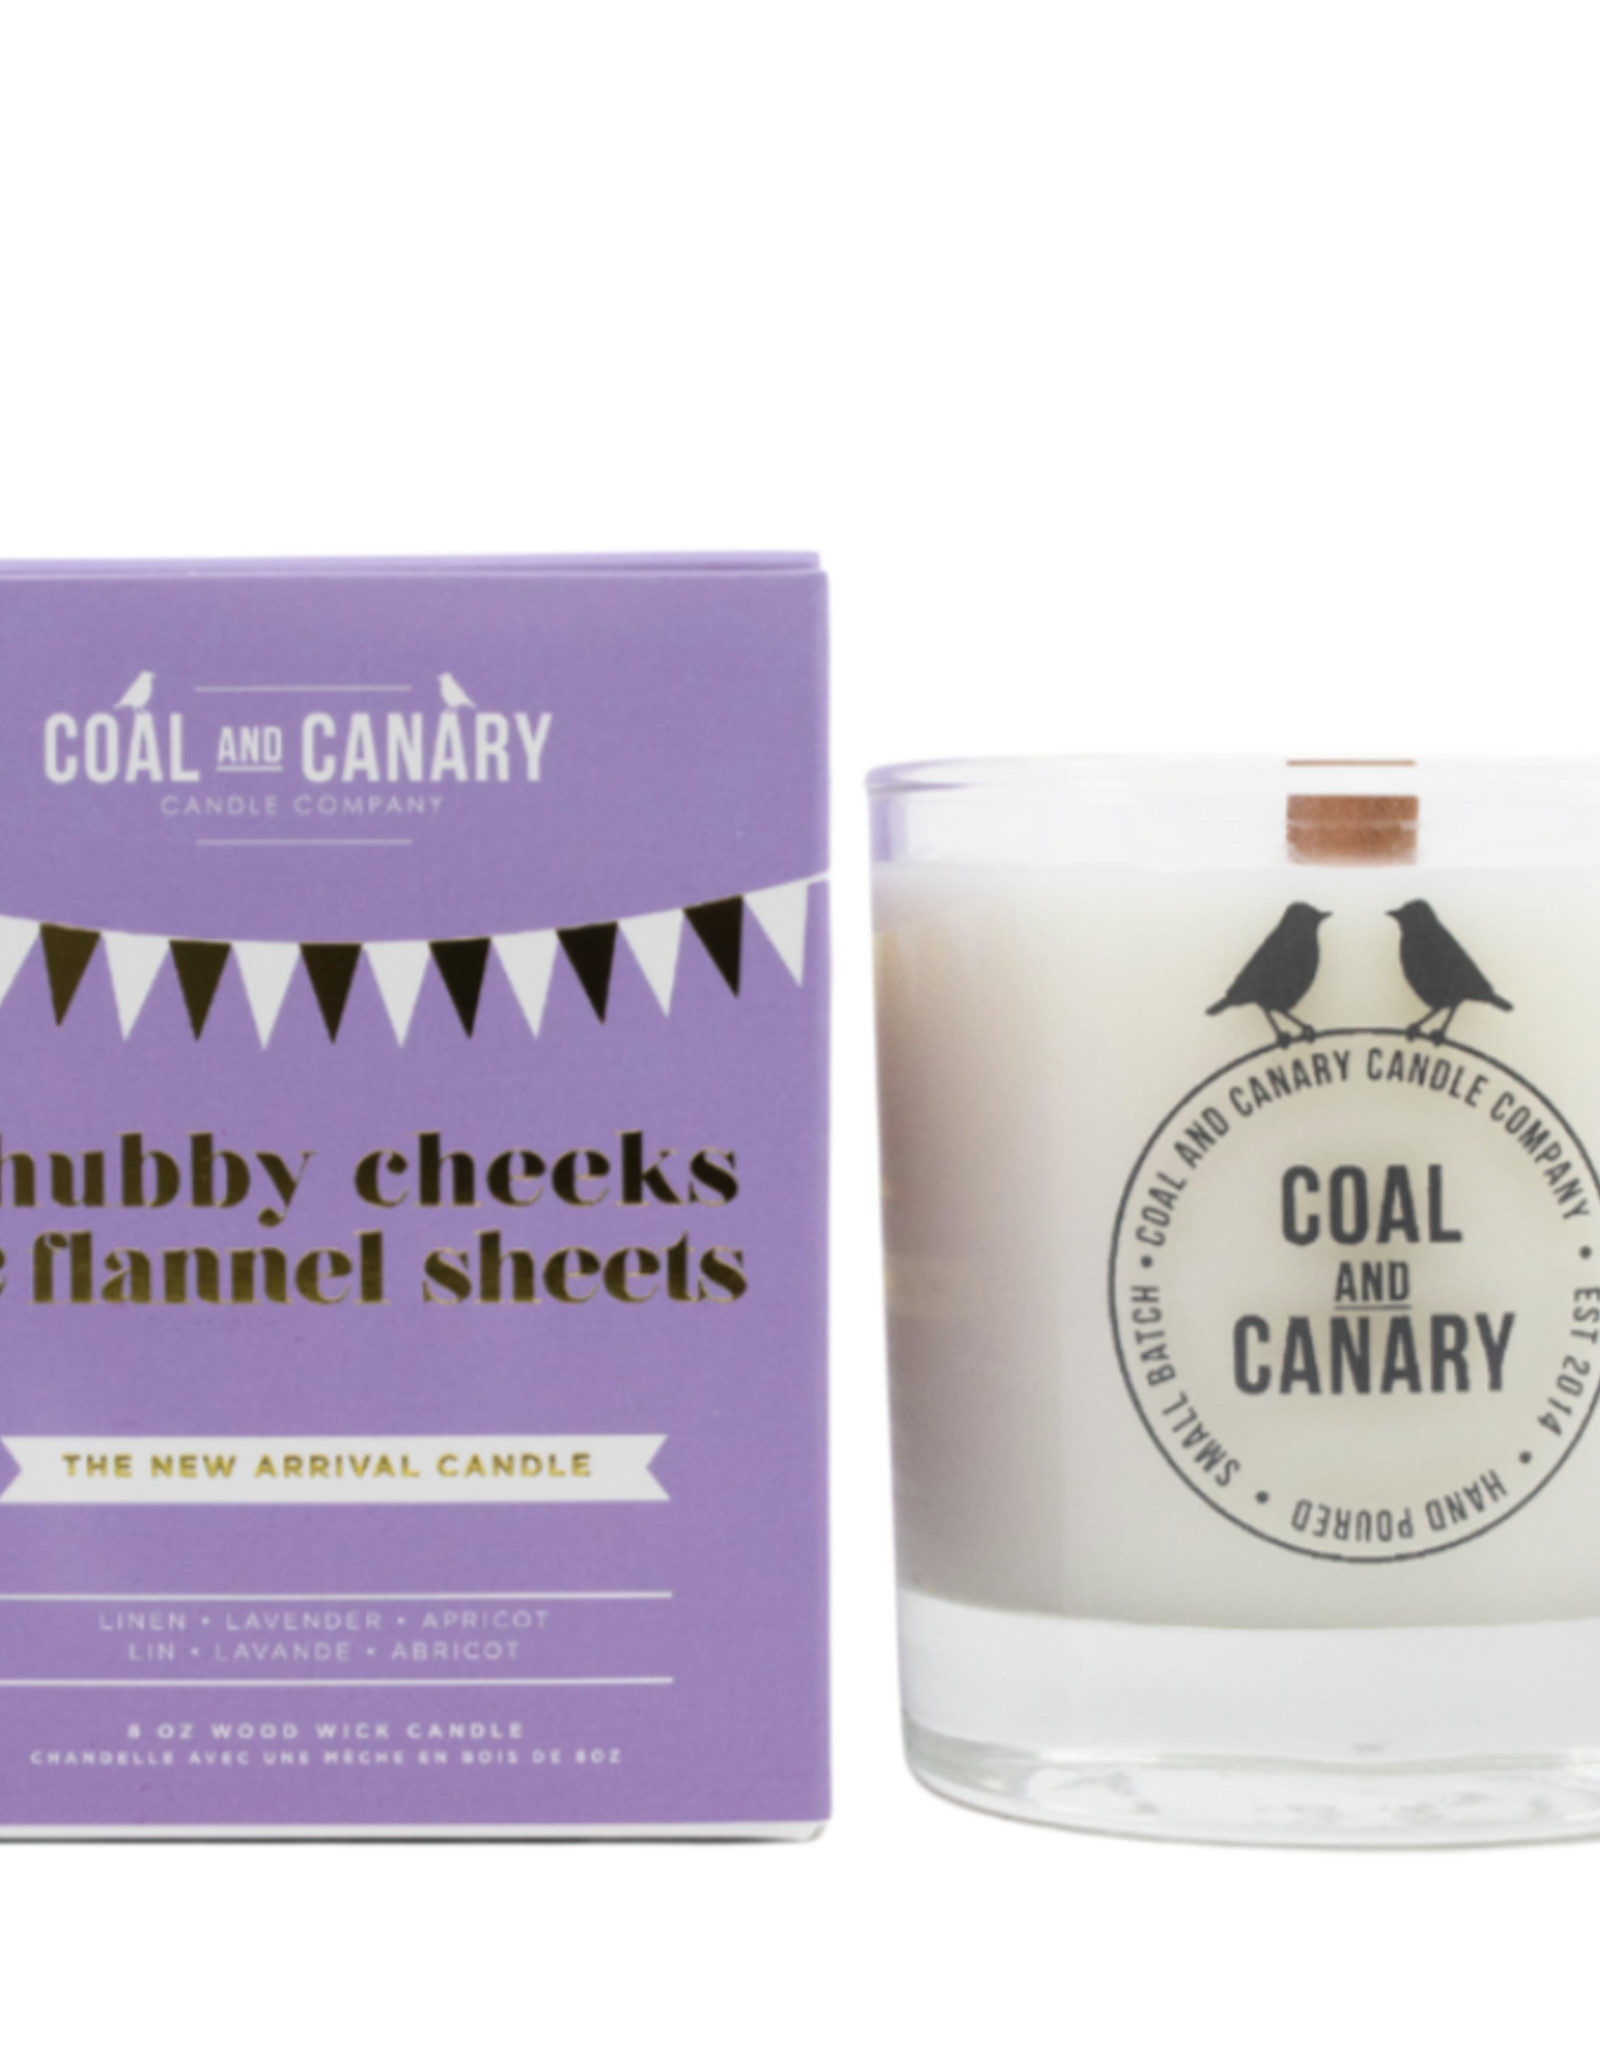 Chubby Cheeks & Flannel Sheets - 8oz. Wood Wick Candle